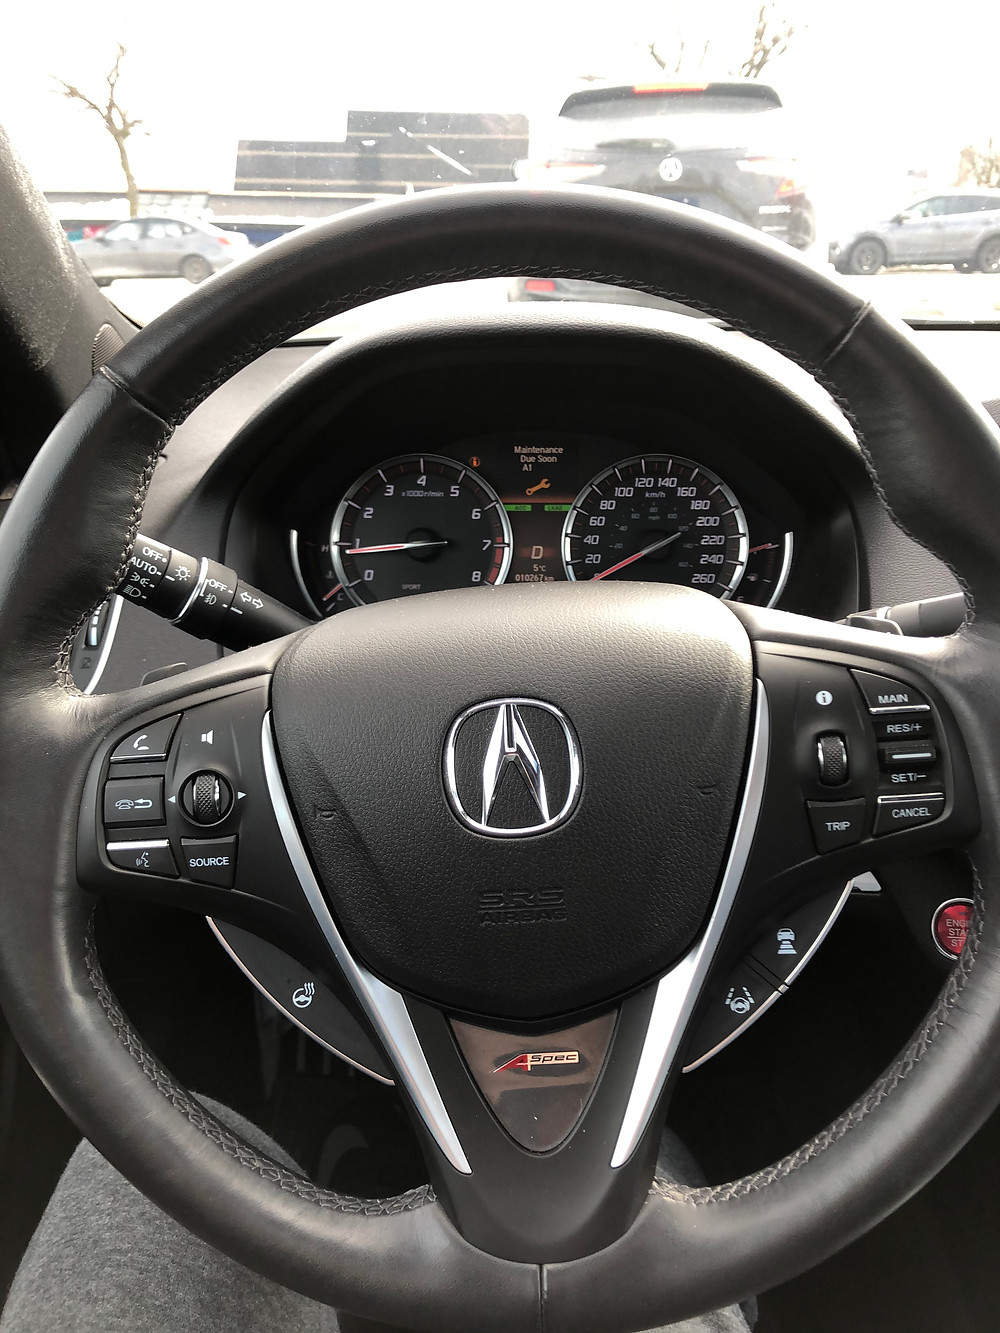 Acura TLX A-Spec Interior Steering Wheel